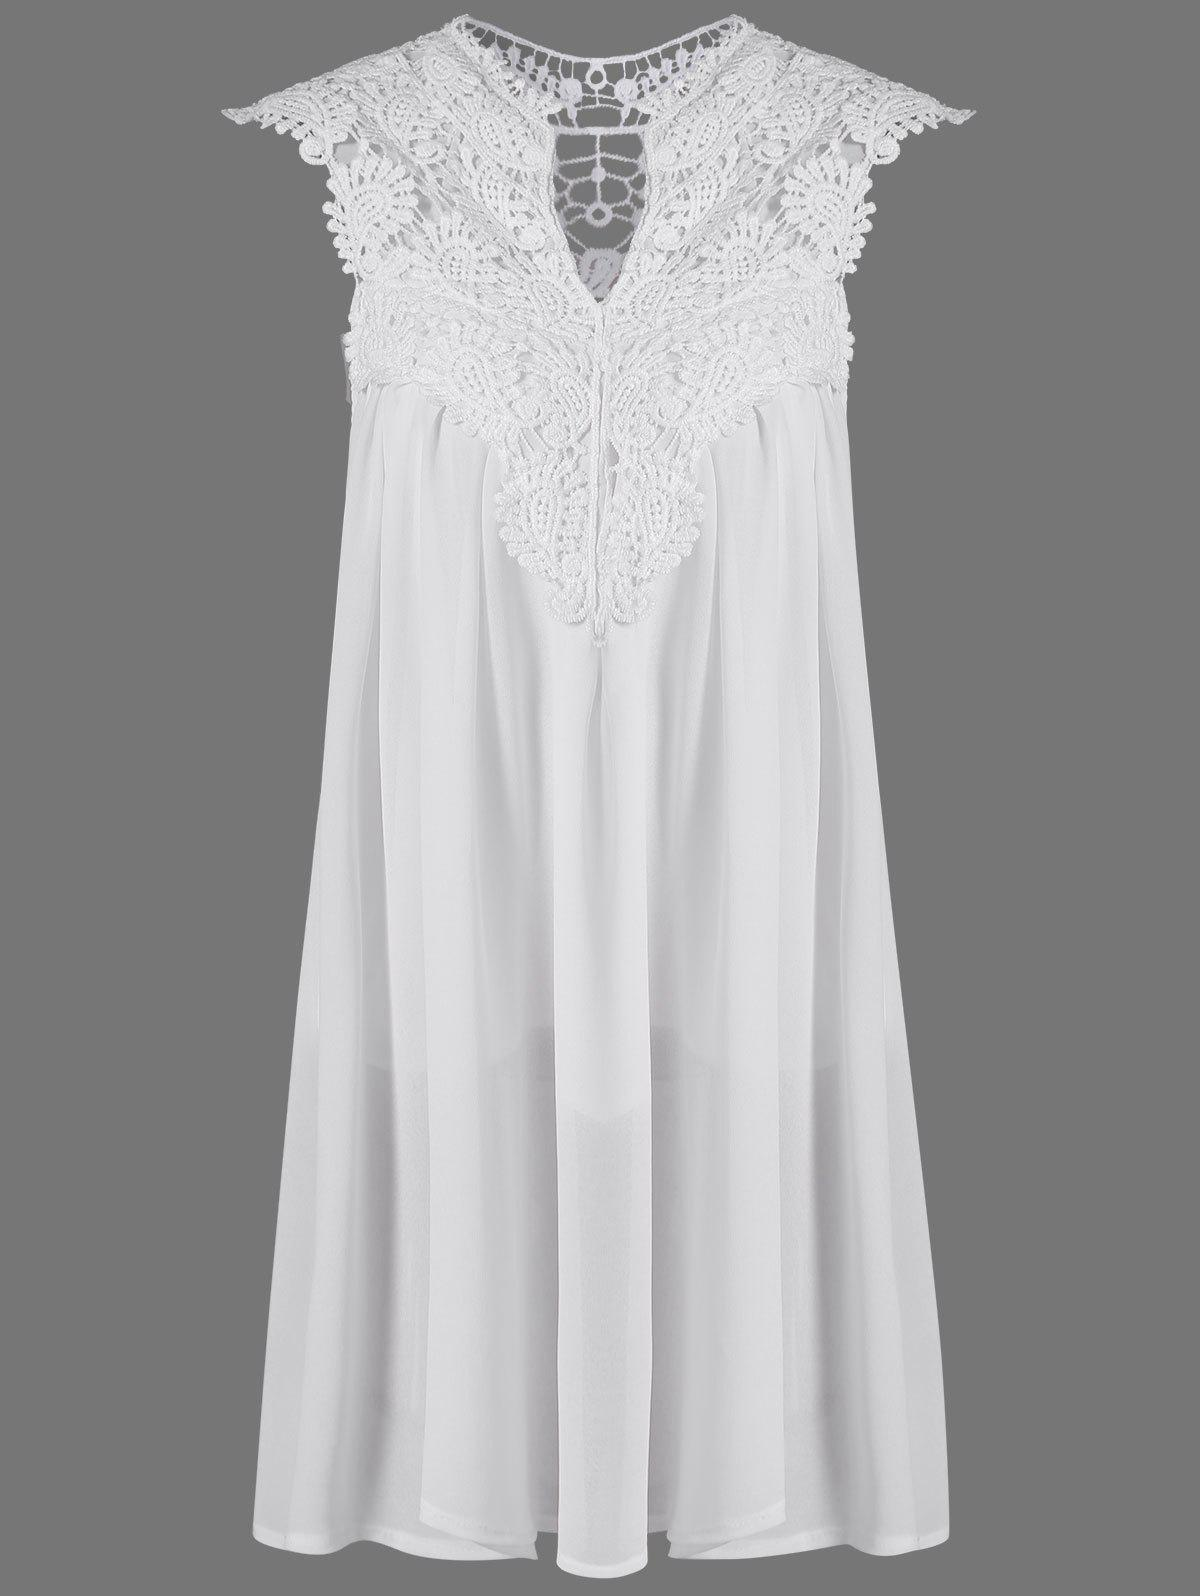 24bcb4ad10c 2018 Crochet Lace Insert Short Sleeveless Ruched Dress In White M ...